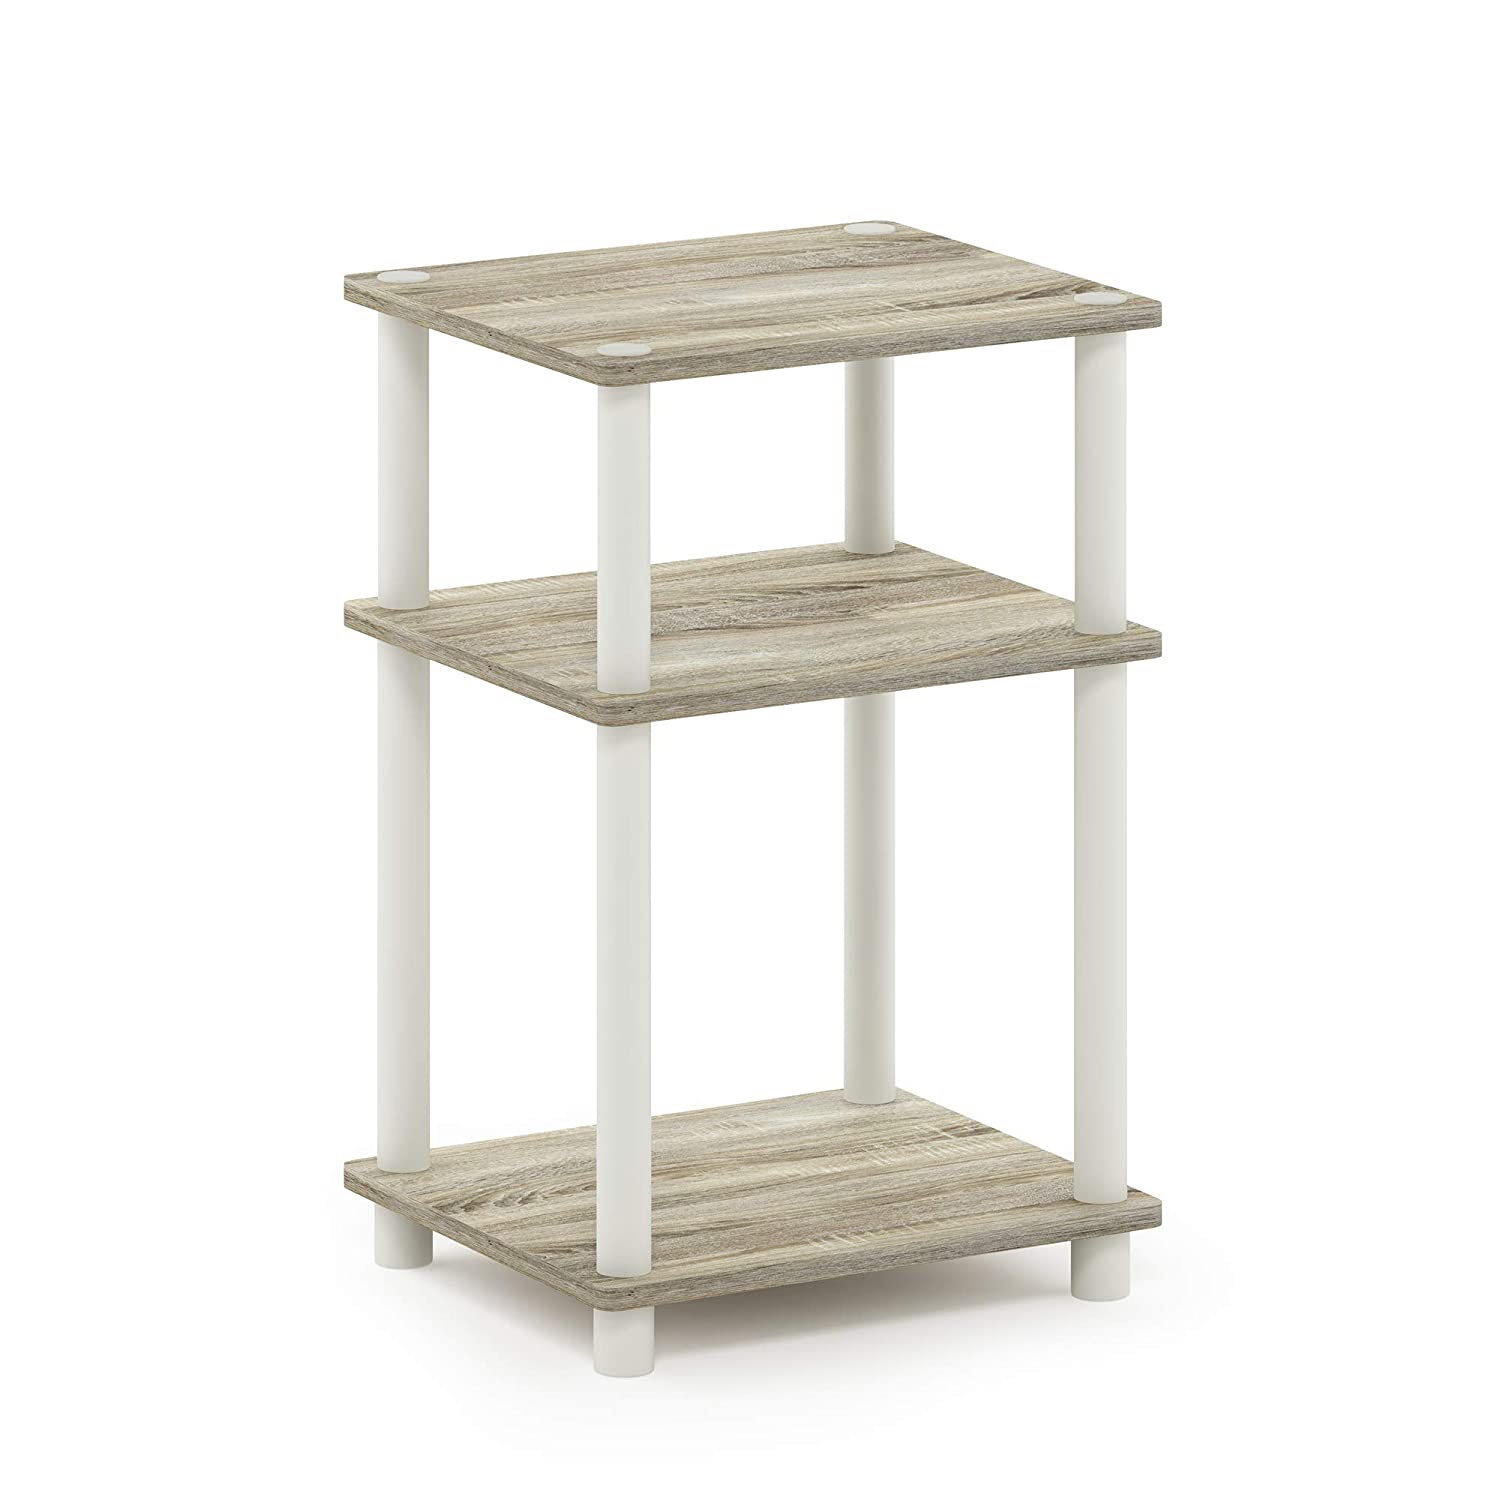 Furinno 11087OK/WH Just 3-Tier End Table, 1-Pack, Sonoma Oak/White